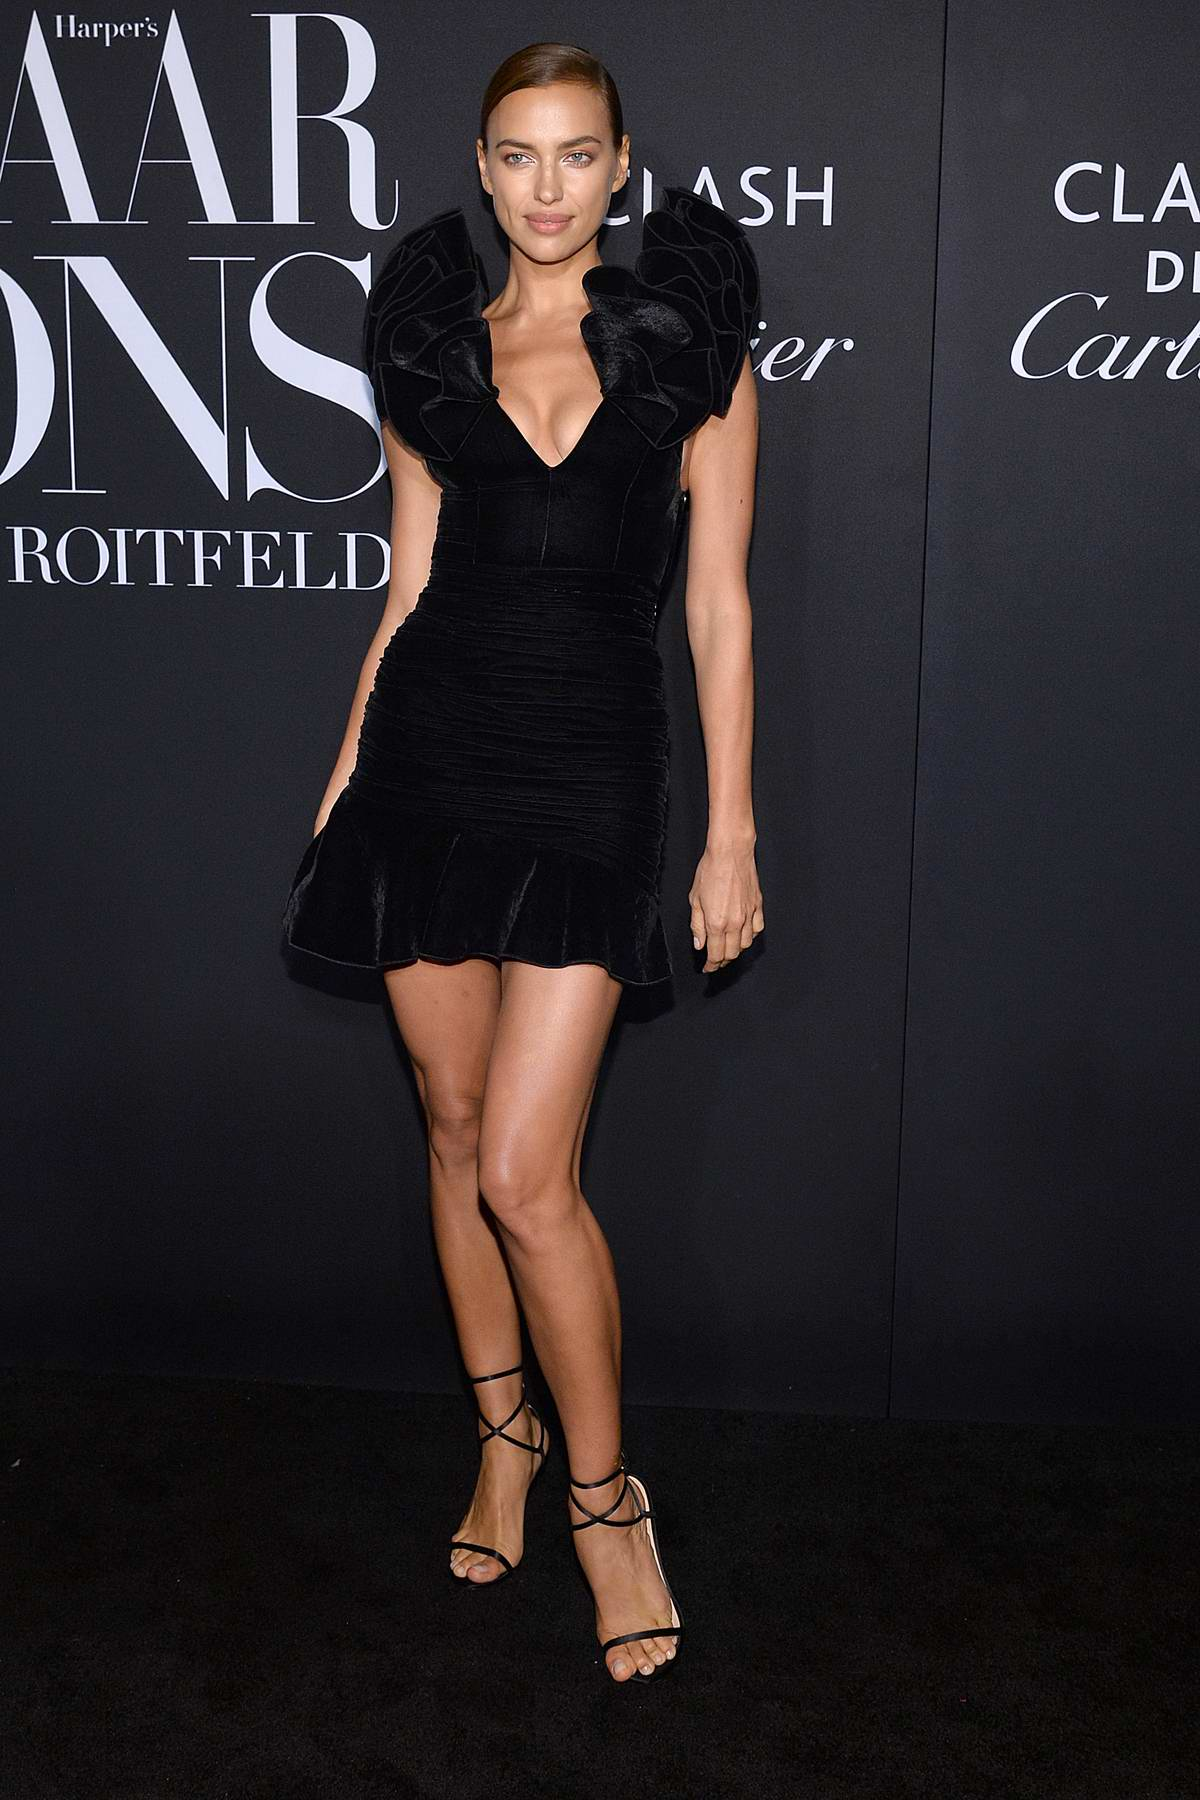 Irina Shayk attends the 2019 Harper's Bazaar ICONS Party at The Plaza Hotel in New York City